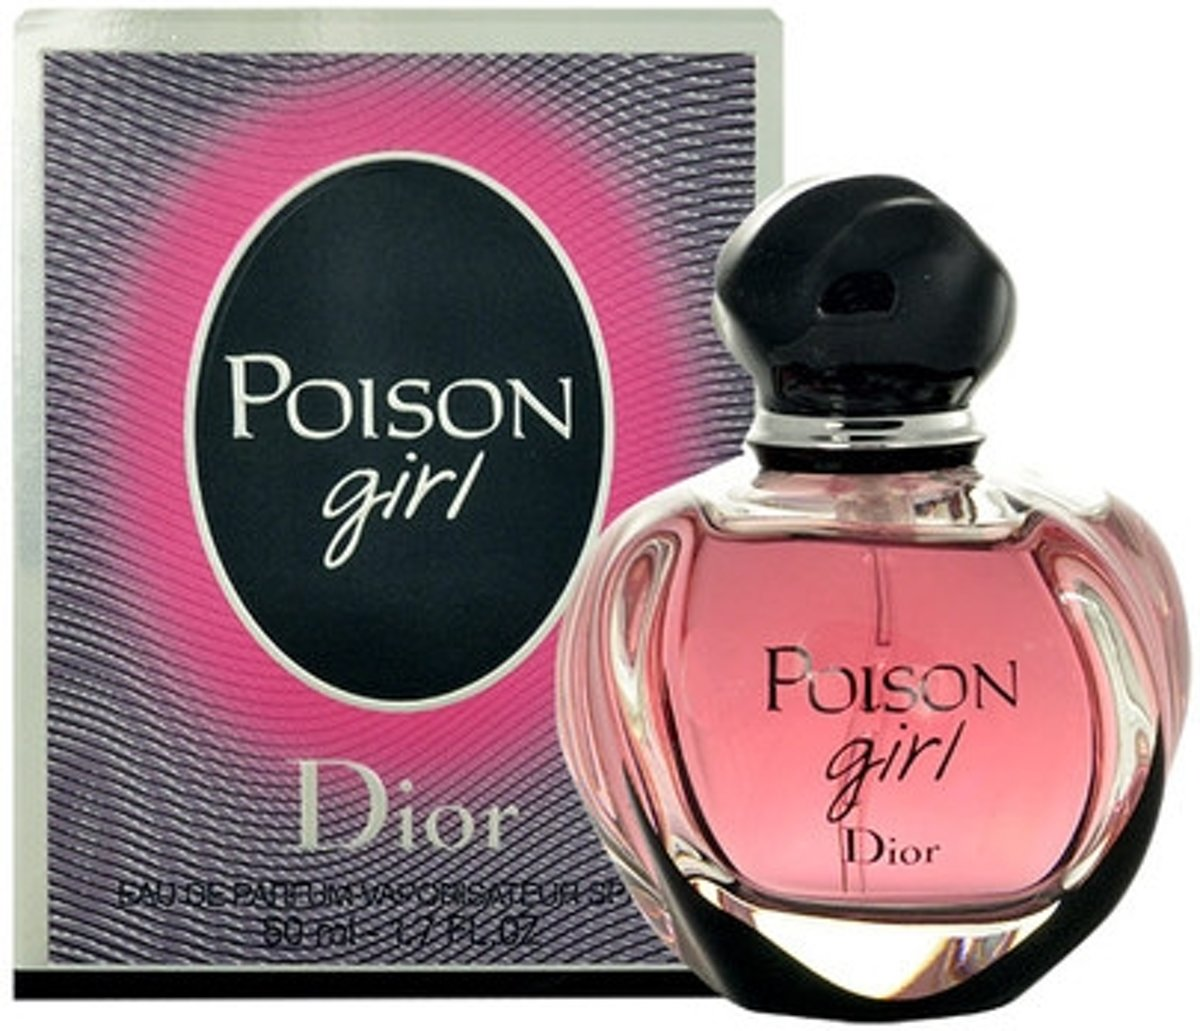 Dior Poison Girl - Eau de Toilette - 30 ml